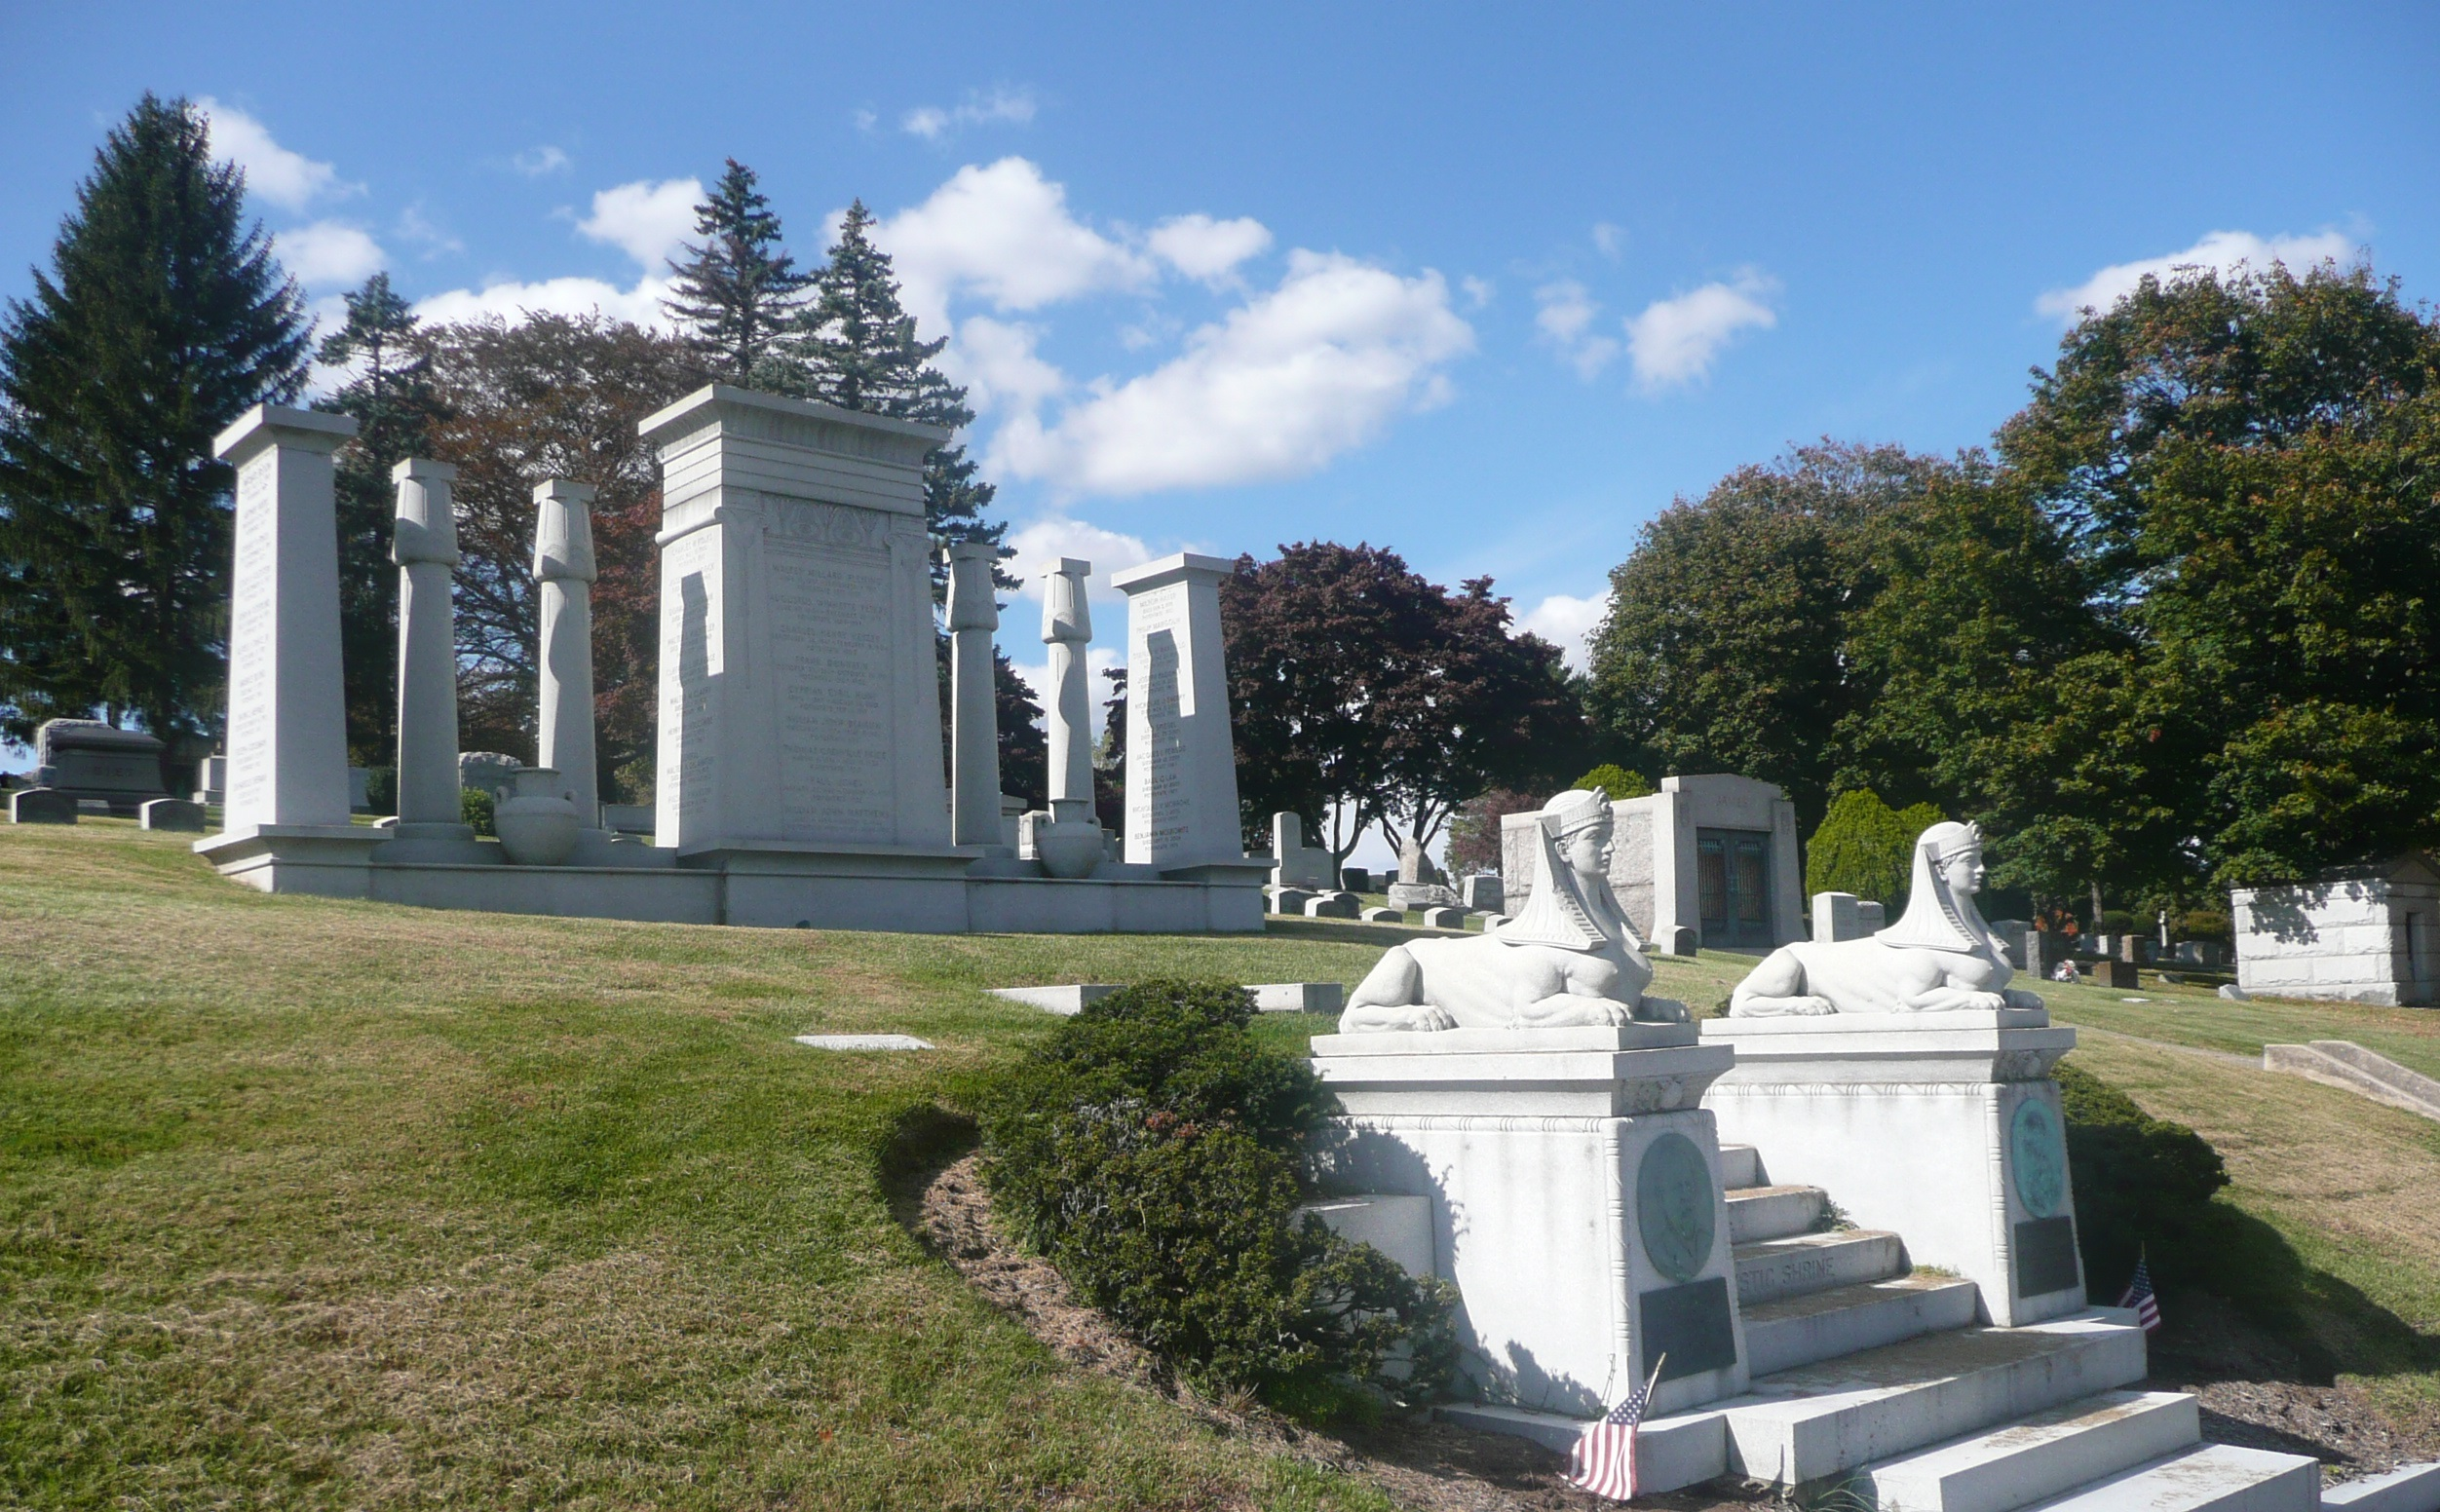 The plot at Kensico Cemetery belonging to Mecca Temple, Ancient Arabic Order of the Nobles of the Mystic Shrine.